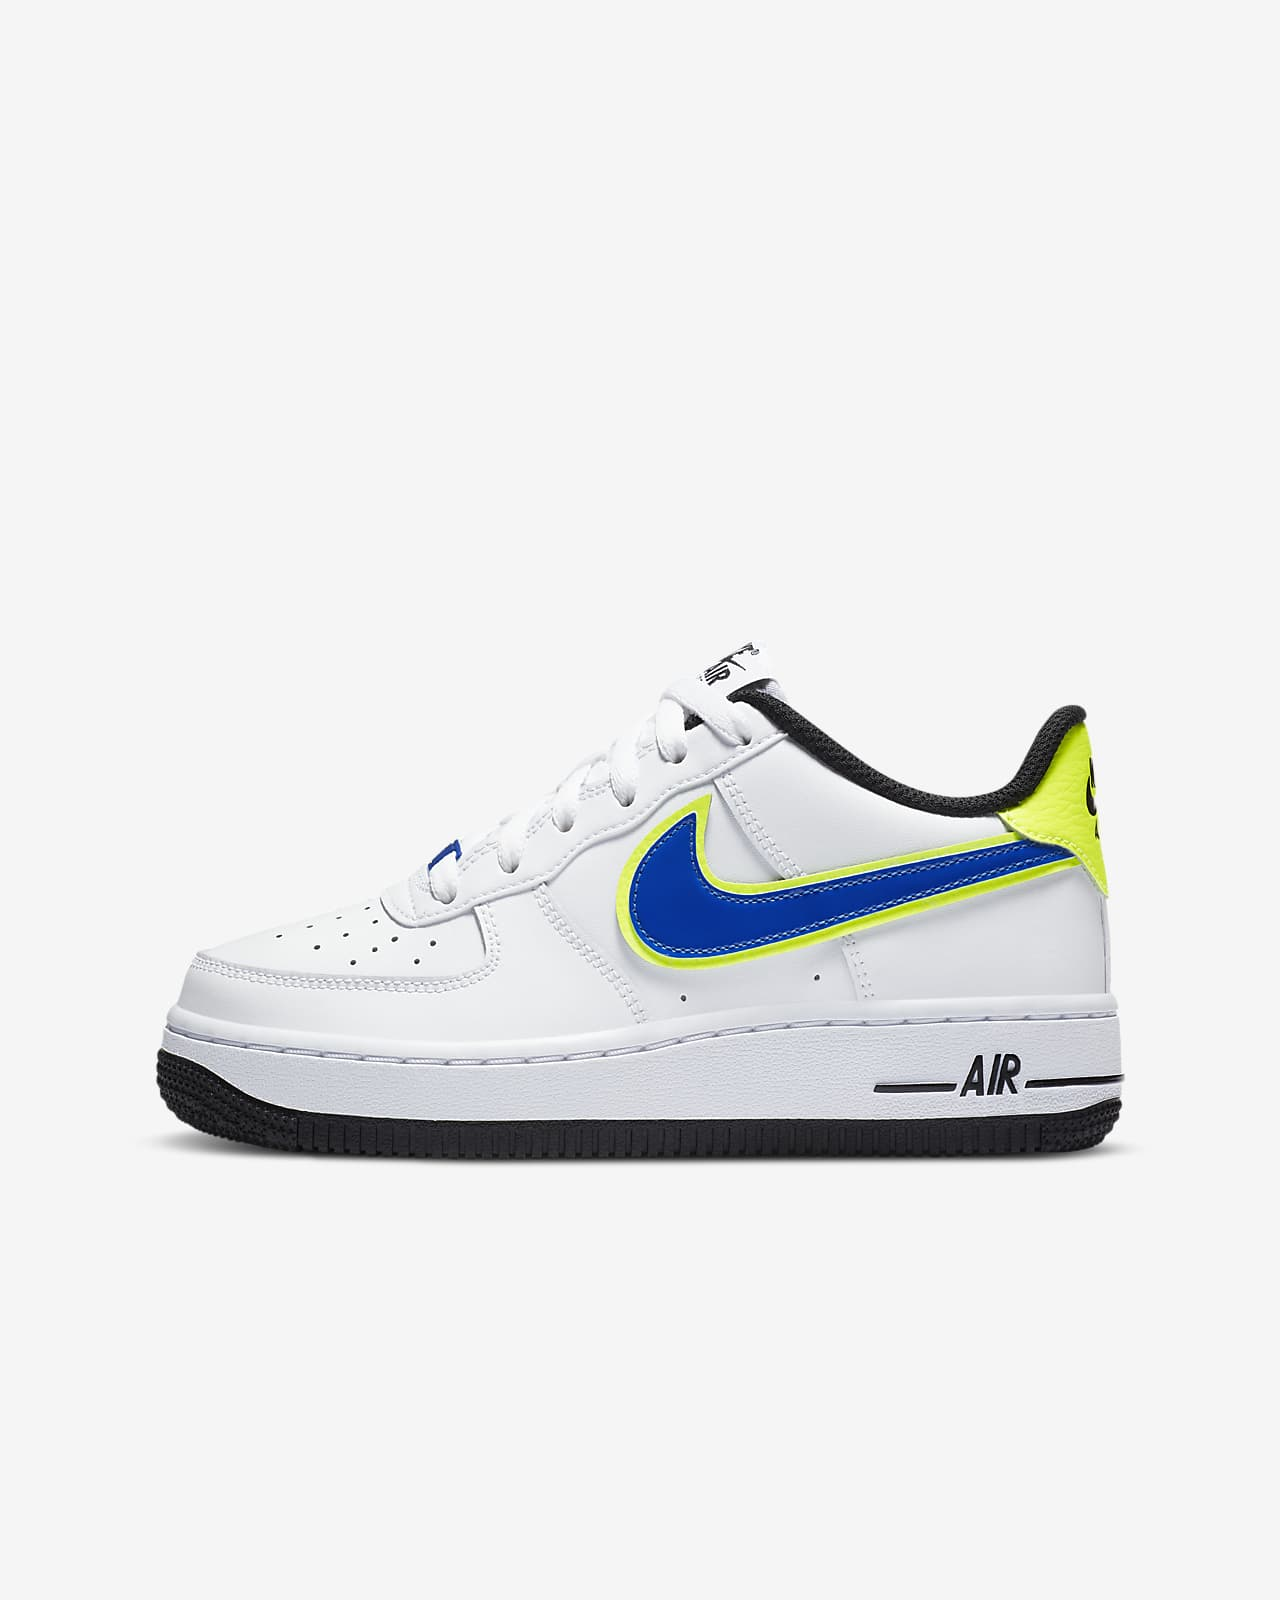 Nike Air Force 1 '07 sko til store barn